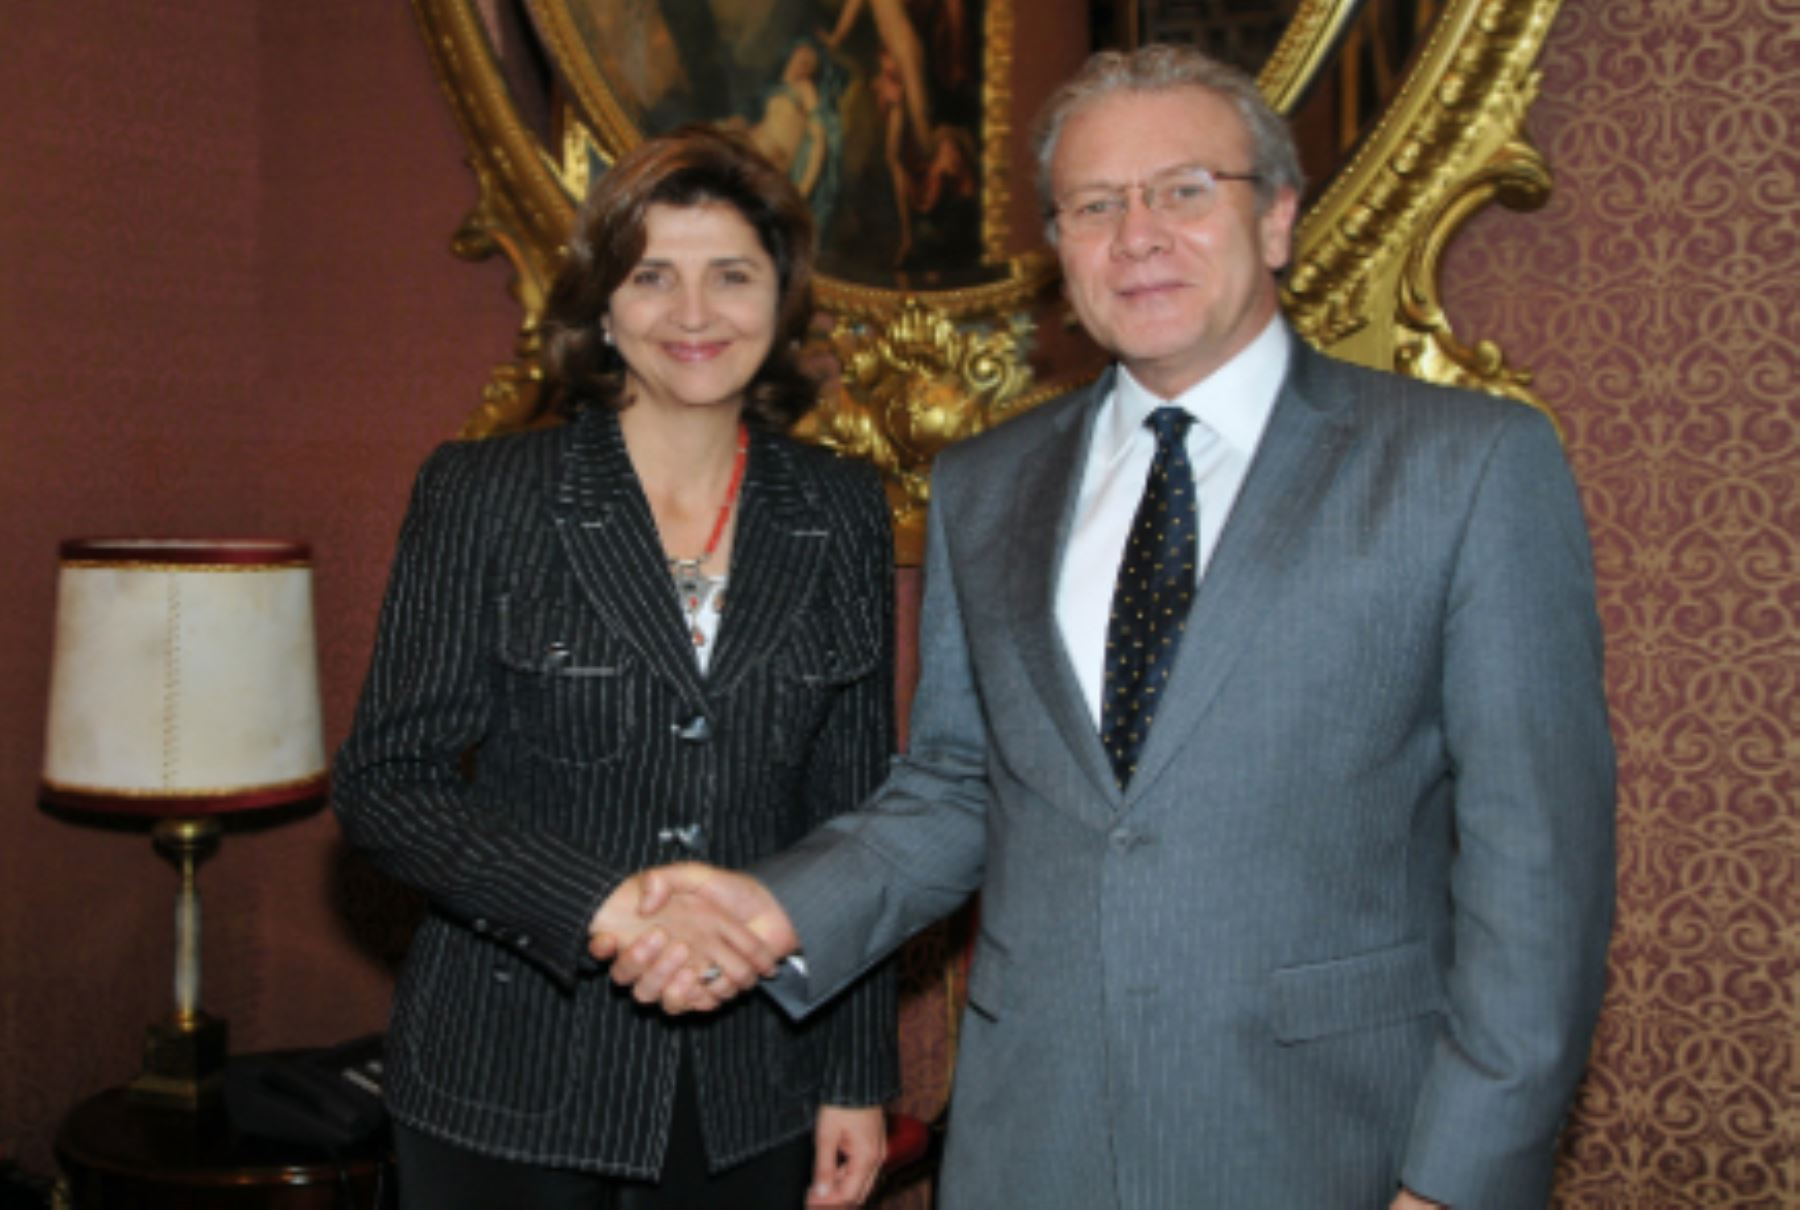 Foreign ministers met in Lima, Peru.